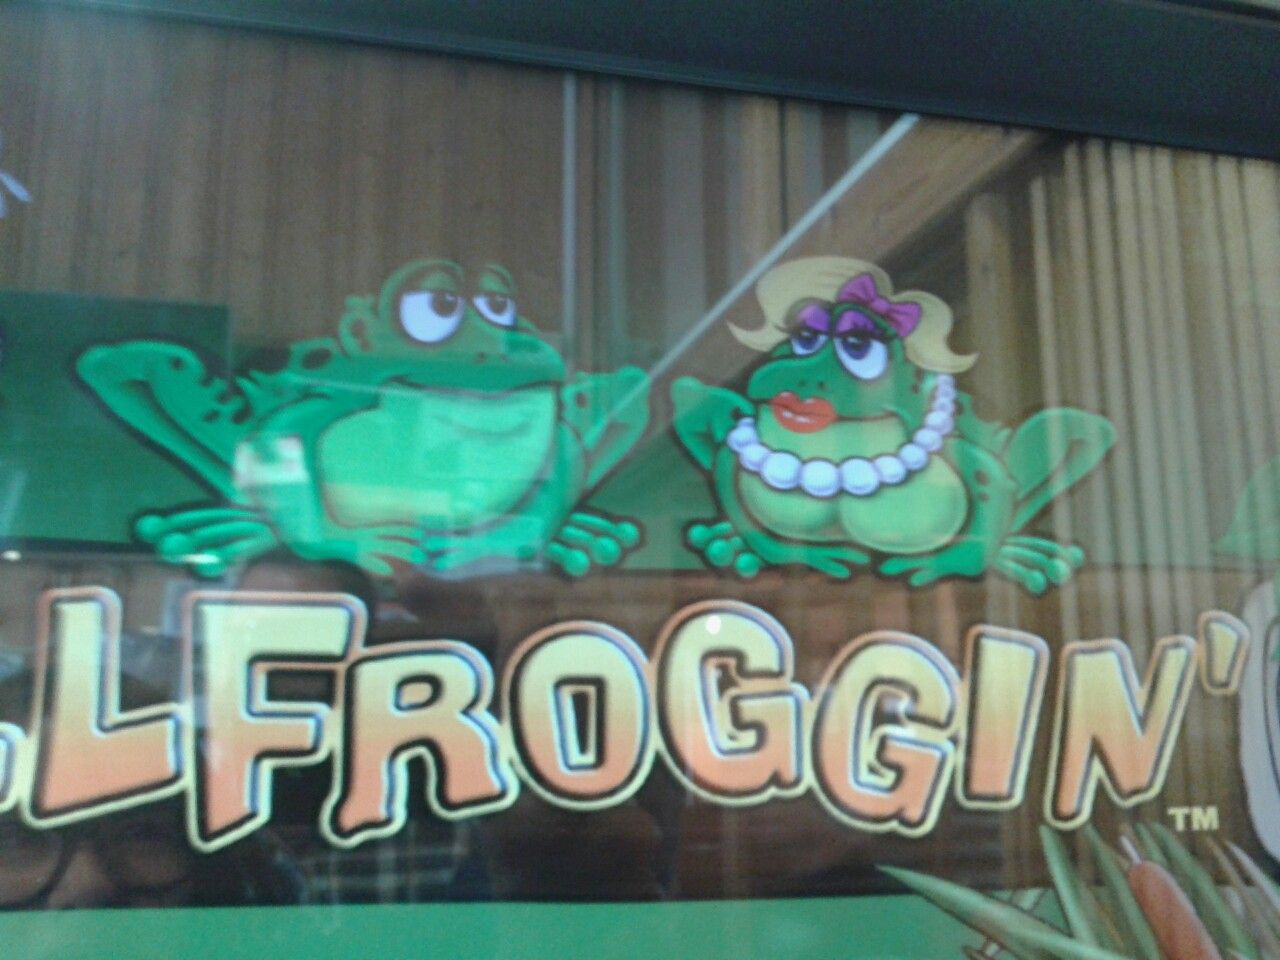 *slams hands on desk* But how will they know the frogs are HETEROSEXUALS if she doesn't have FROG TITS???